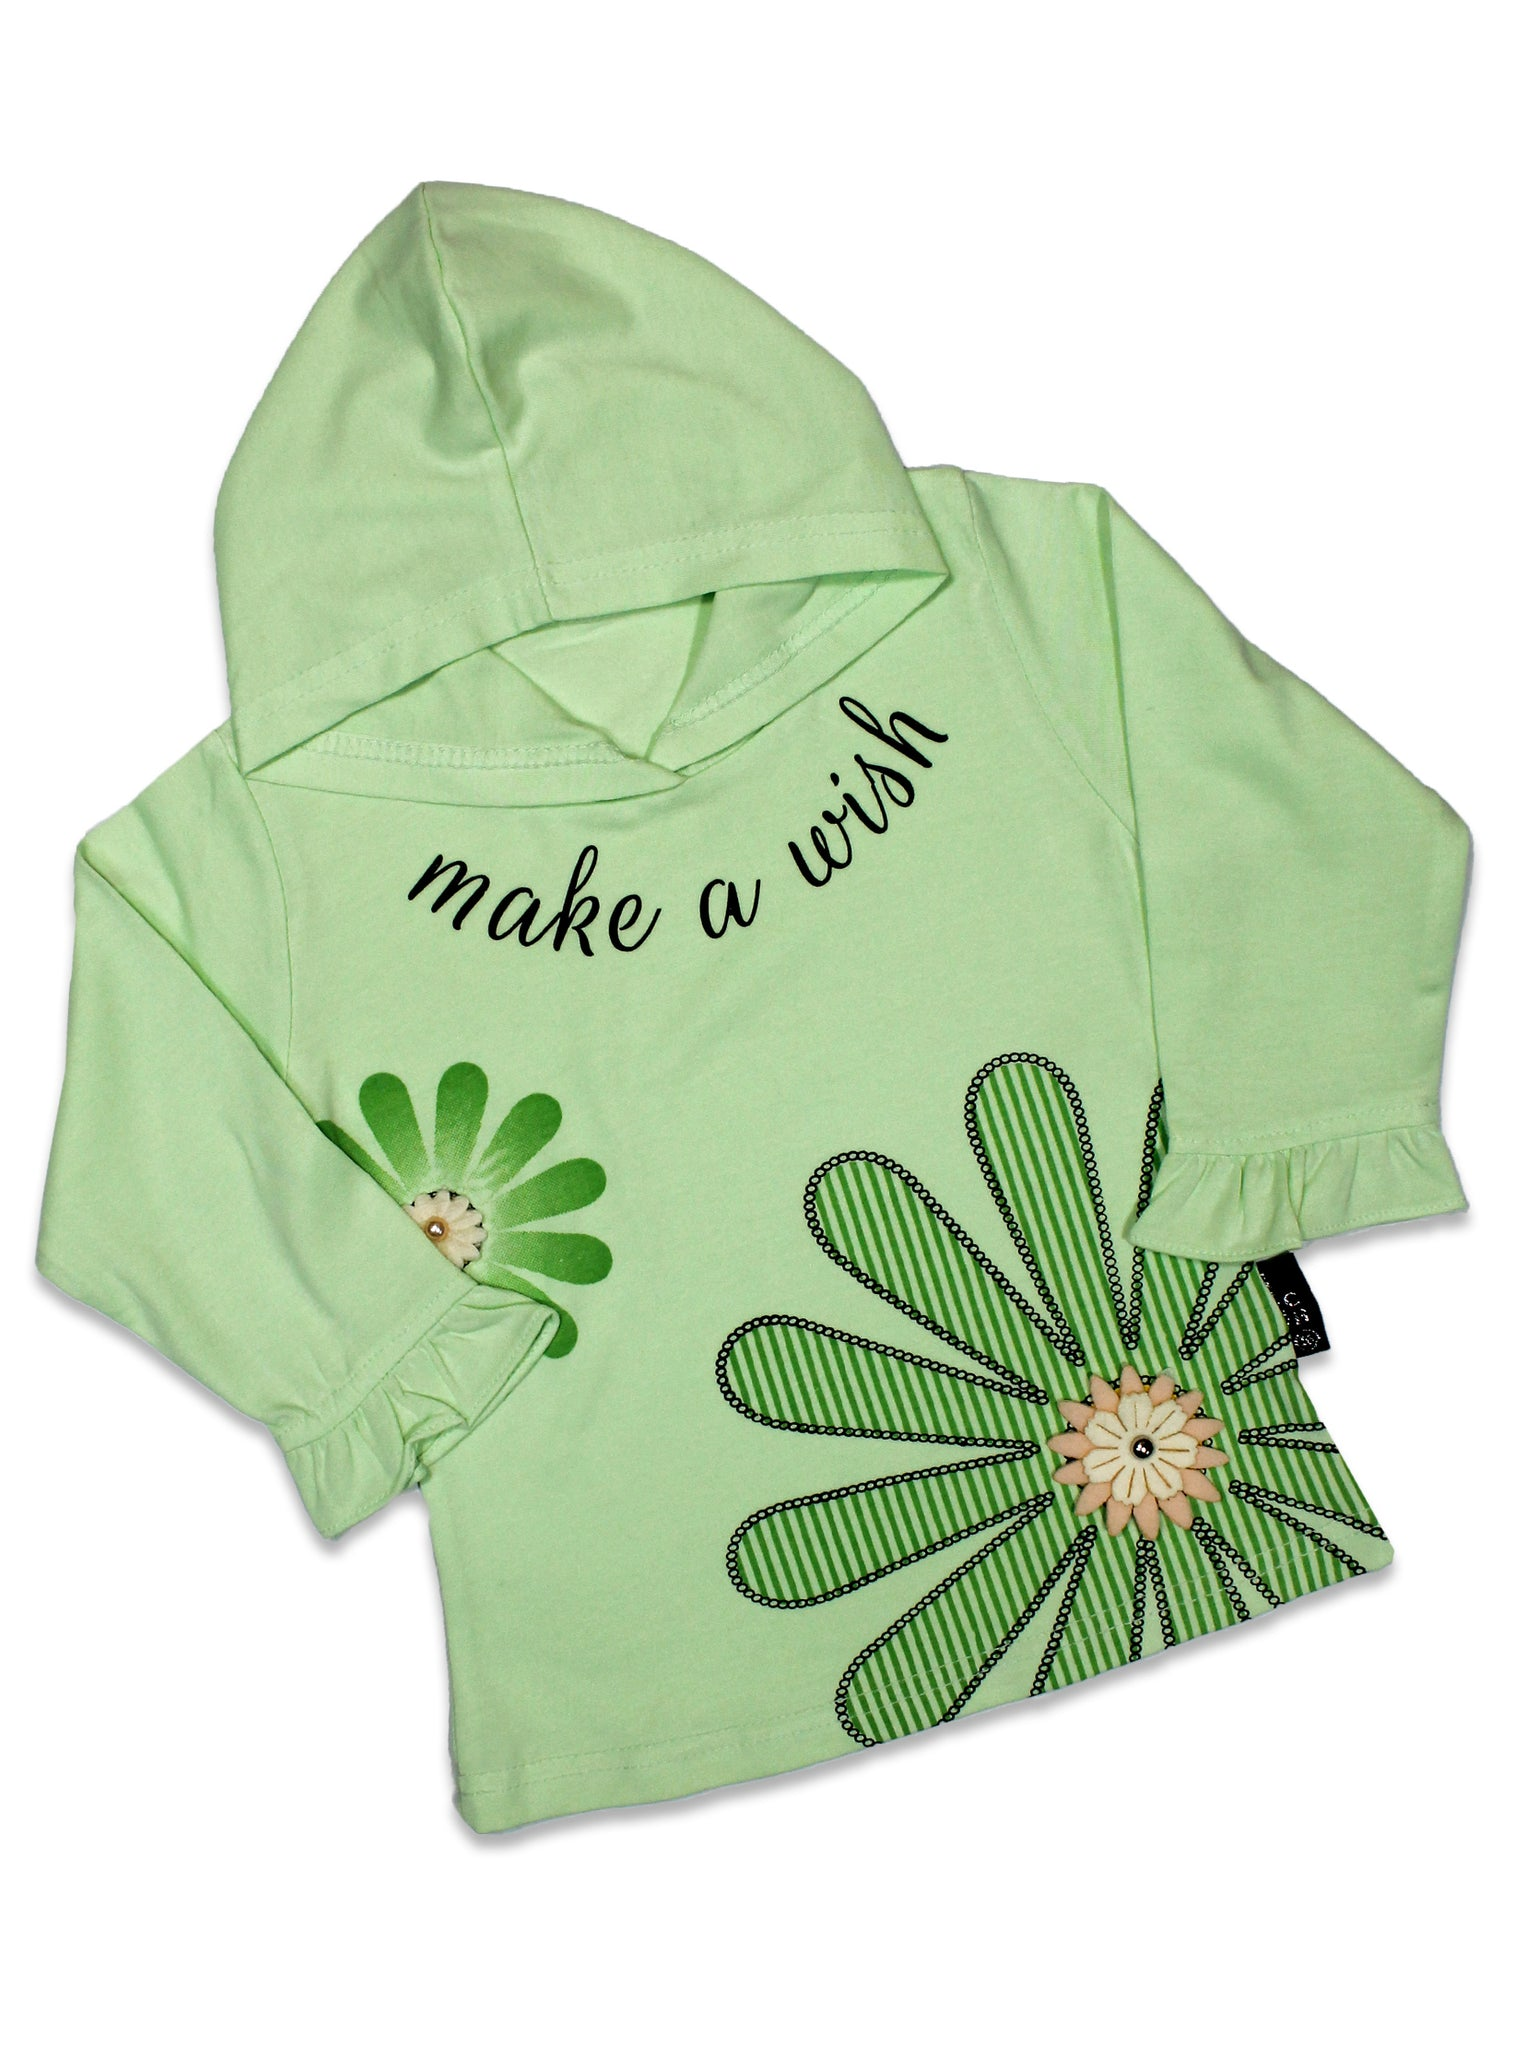 AT2 2.5Yrs - 7Yrs T-Shirt For Girls Floral Print Grass Green